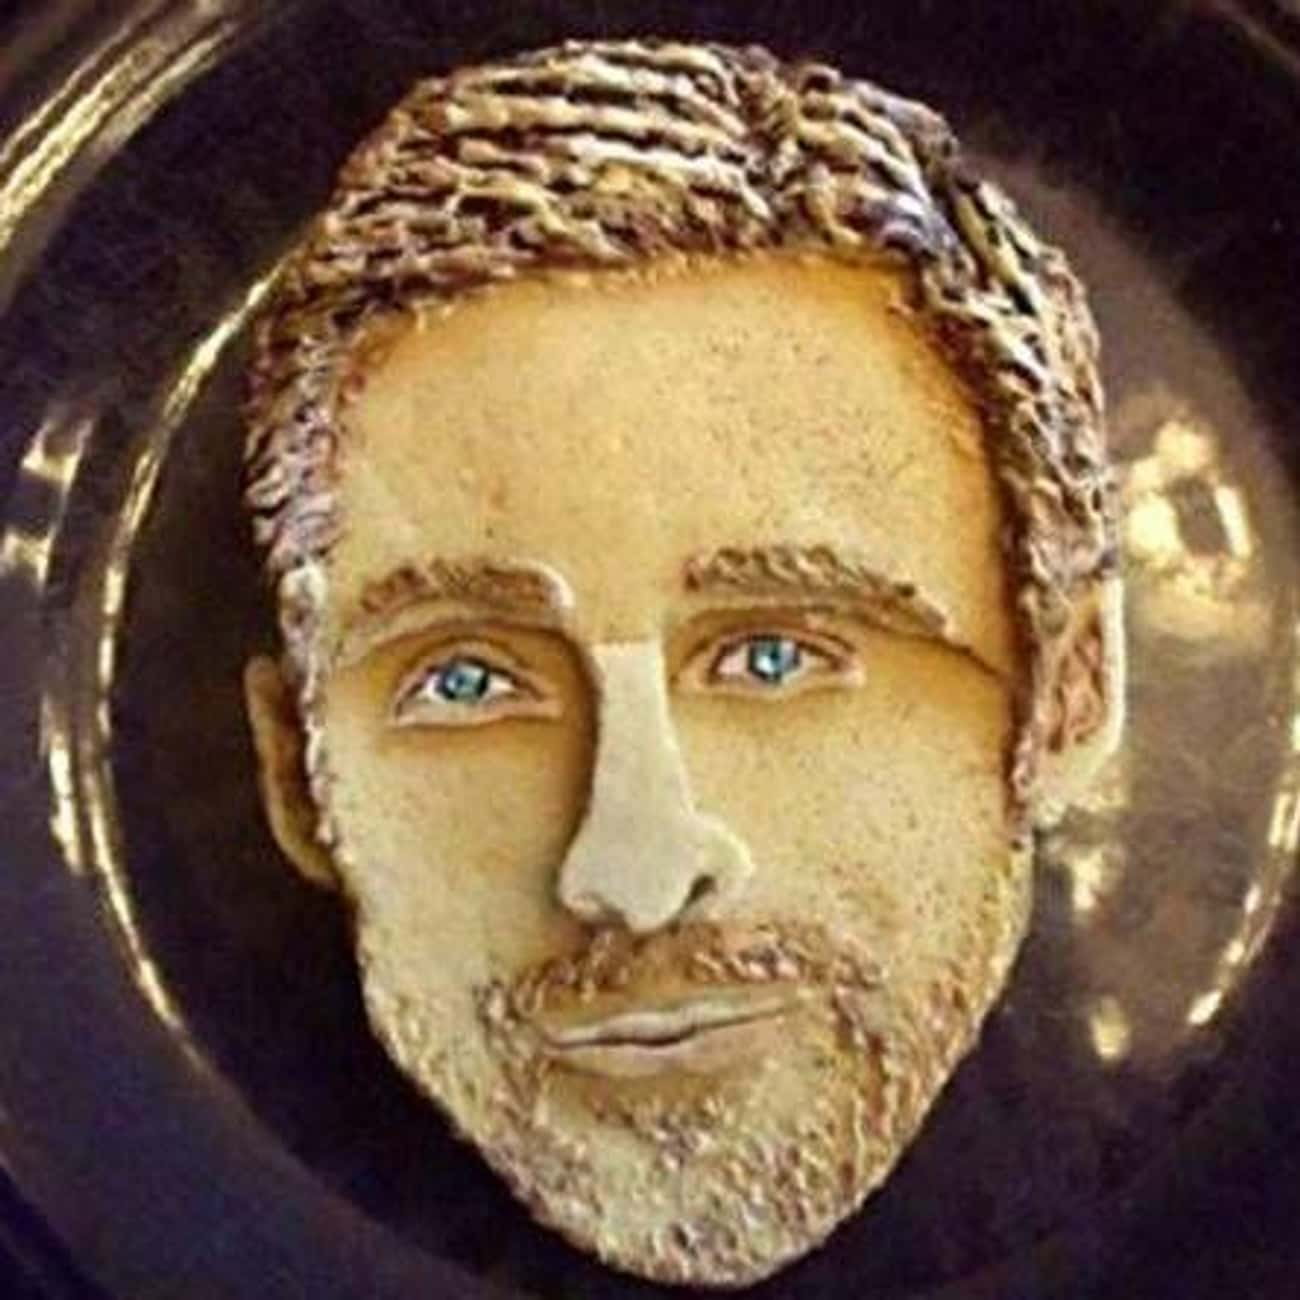 Hey Girl, What Do I Have in My is listed (or ranked) 3 on the list 17 Celebrity Face Cakes That Don't Look Quite Right